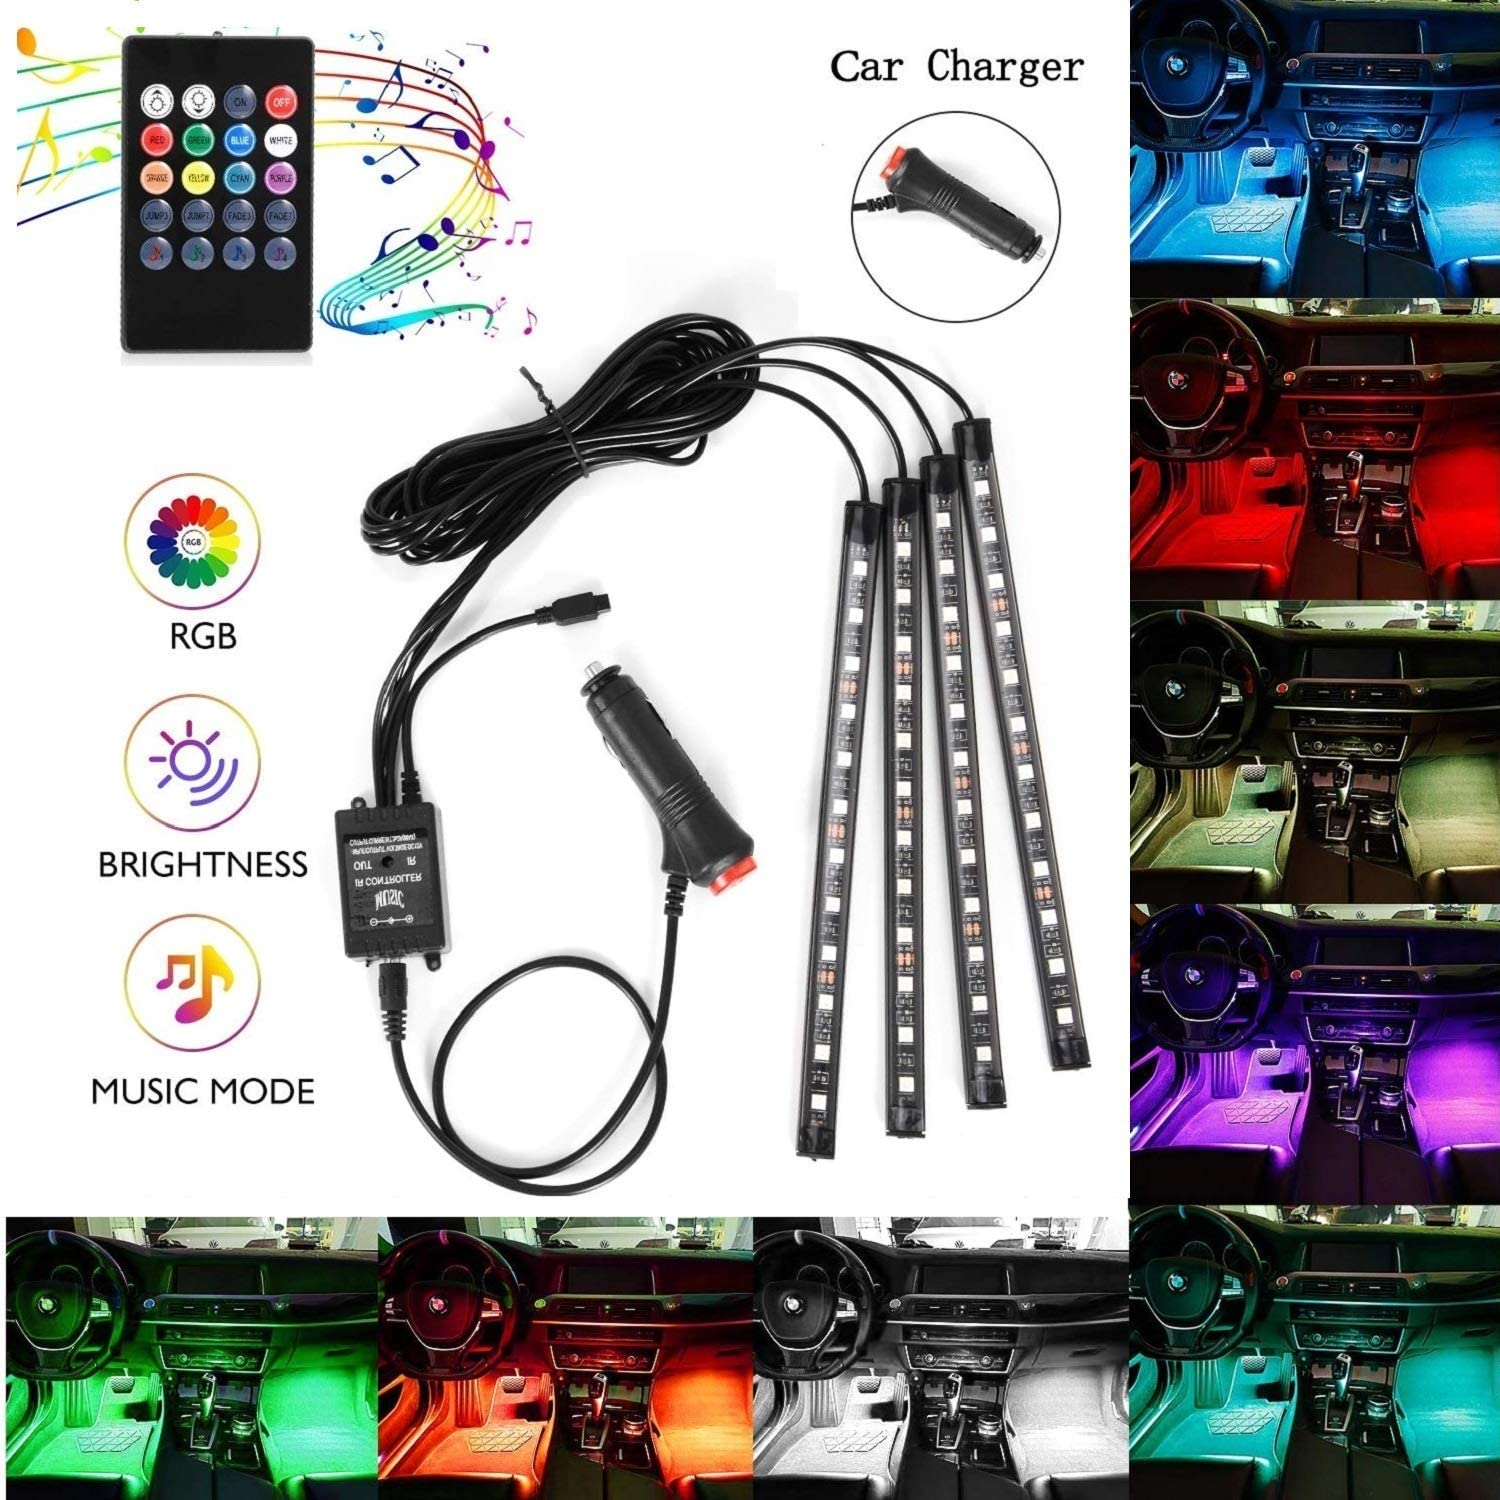 Car LED Strip Lights, 4pcs 48 LEDS Interior Car Lights, Multicolor Music Under Dash Lighting Kit with Sound Active Function and Wireless Remote Control, Car Charger Included, DC 12V